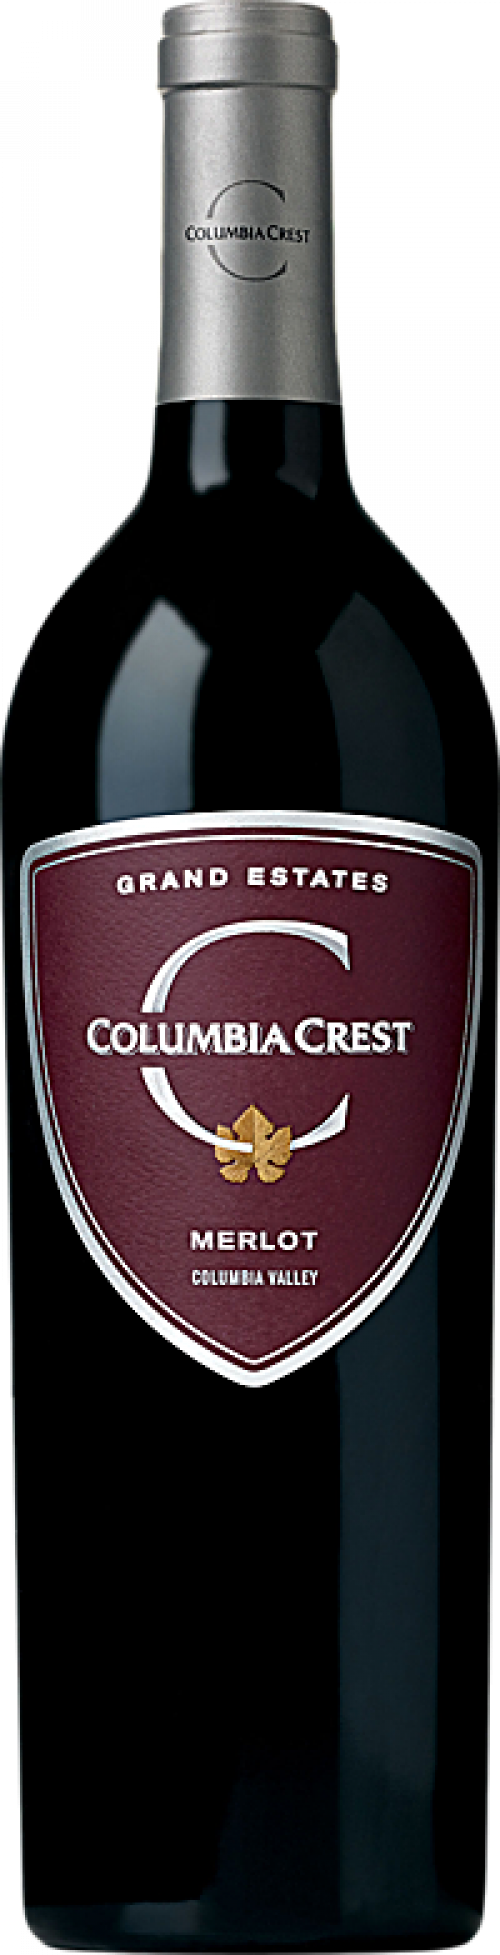 2015 Columbia Crest Grand Estates Merlot 750Ml